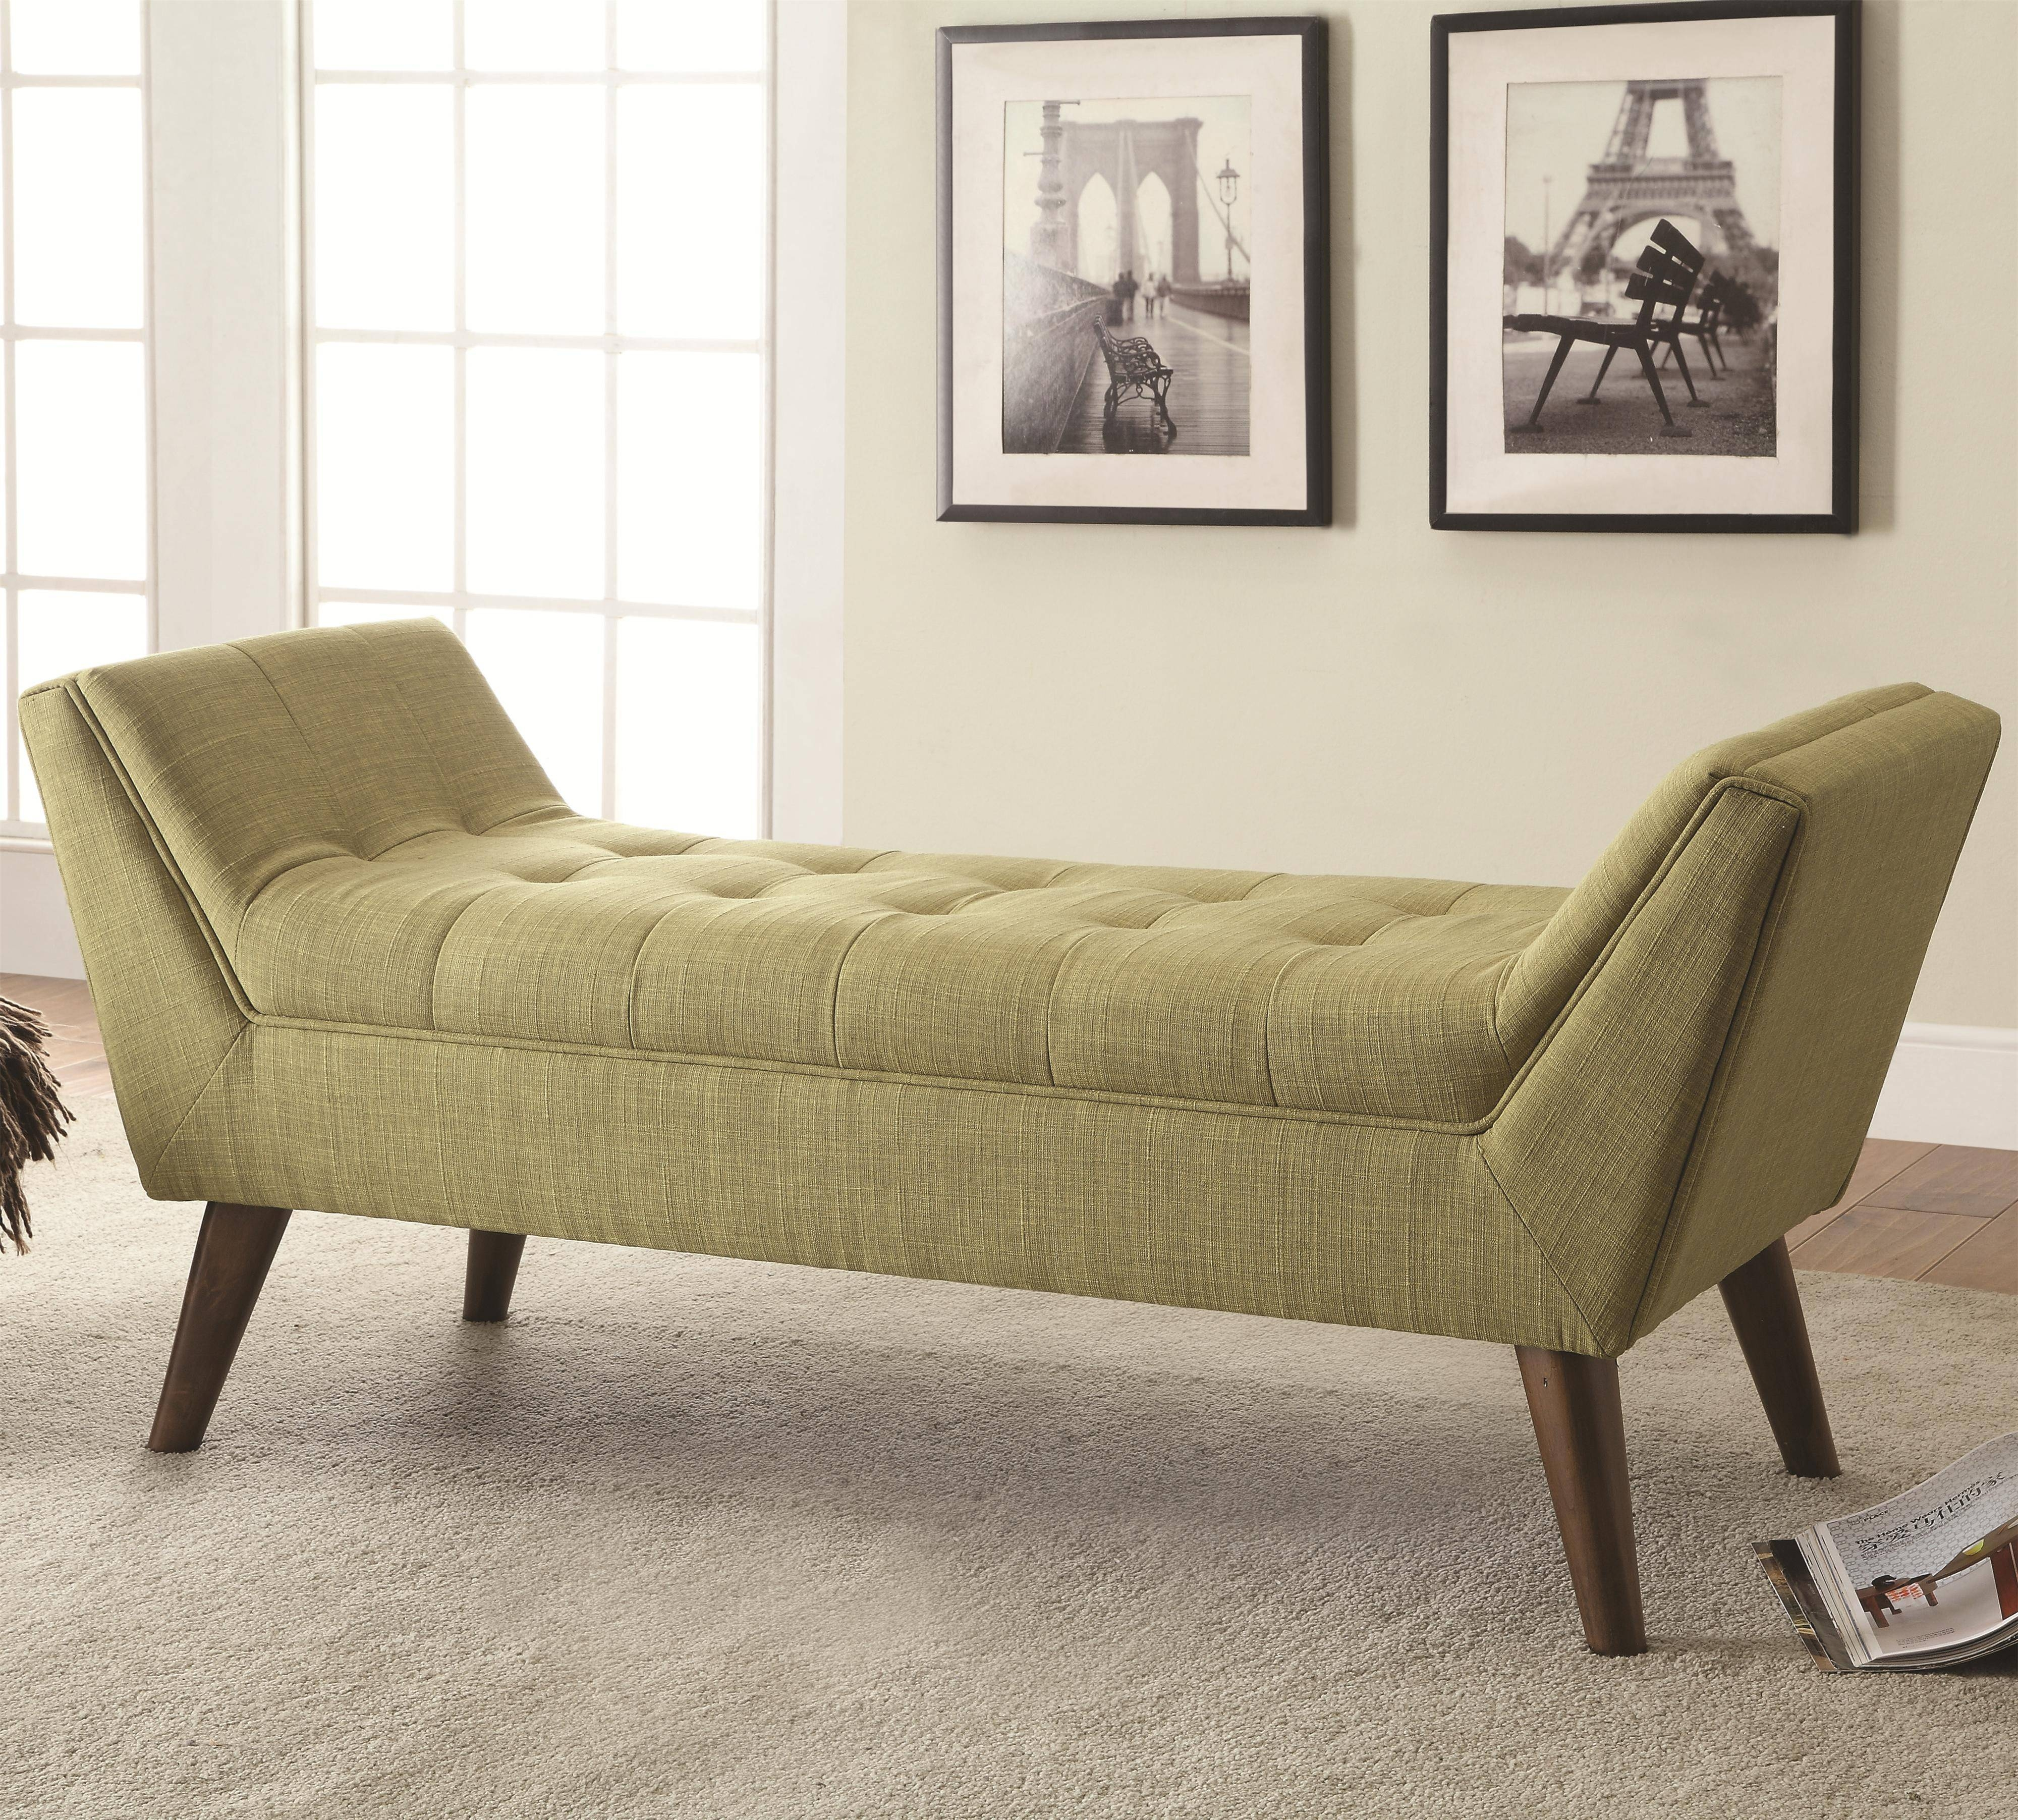 Bedroom : Tufted Bedroom Bench Dining Bench With Storage Fabric intended for Bedroom Bench Sofas (Image 6 of 15)